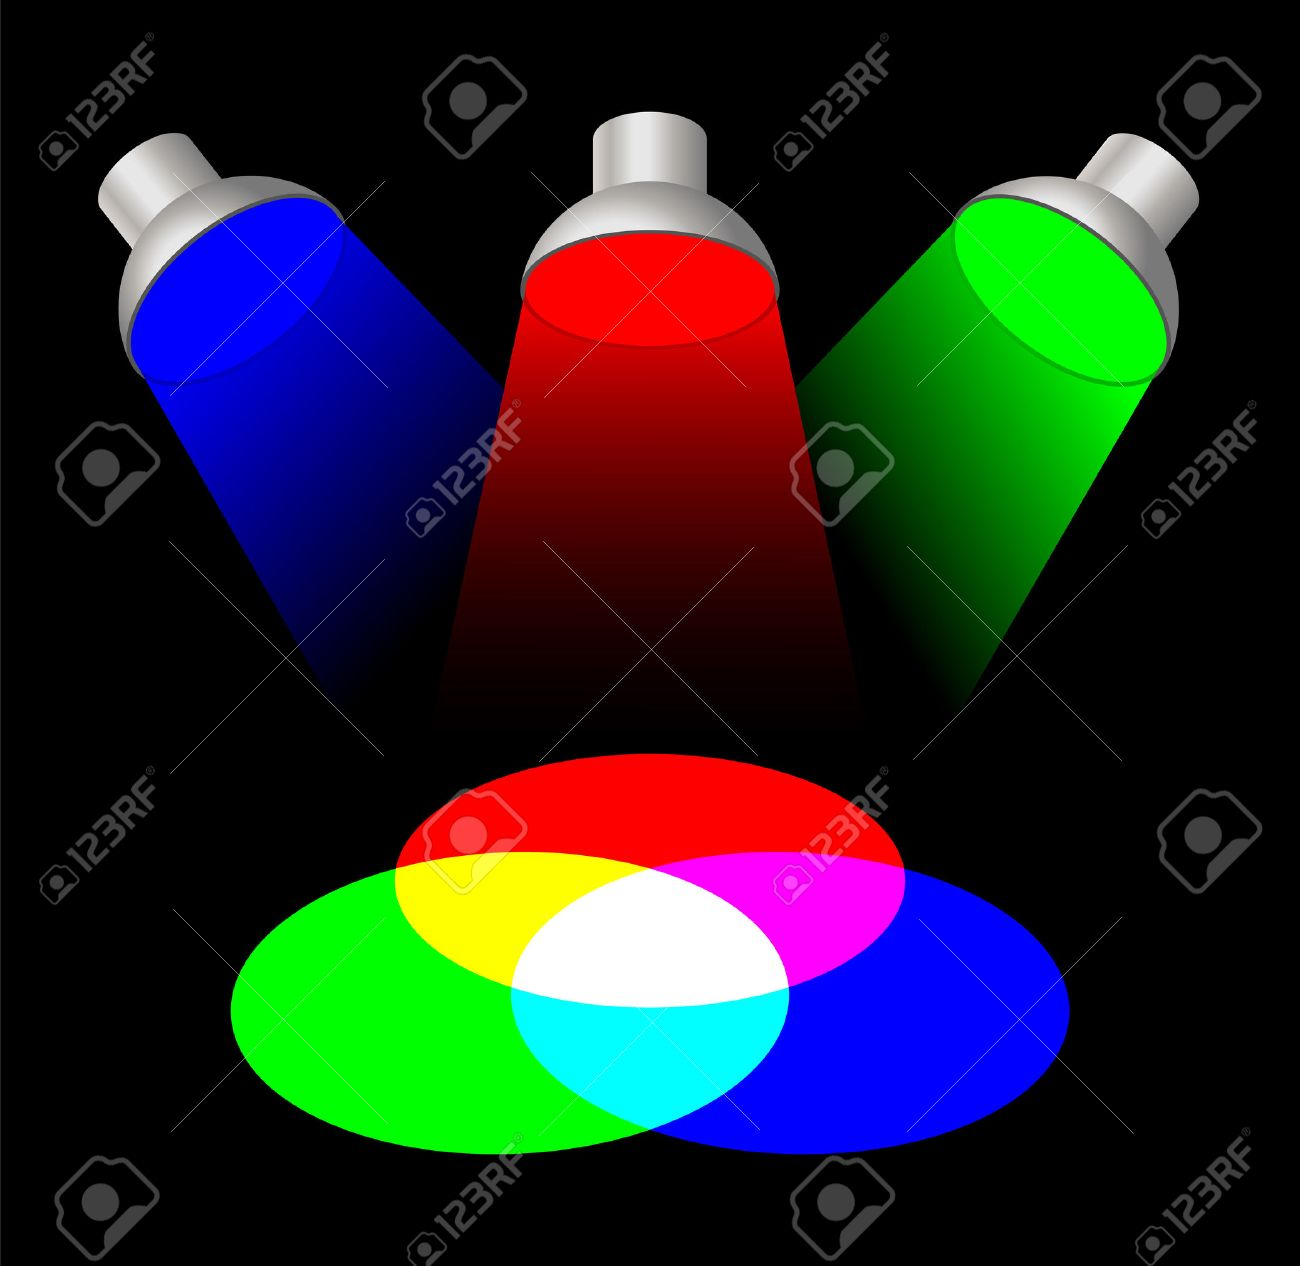 Additive Color Mixing With Three Spotlights The Primary Light Colors Red Green And Blue